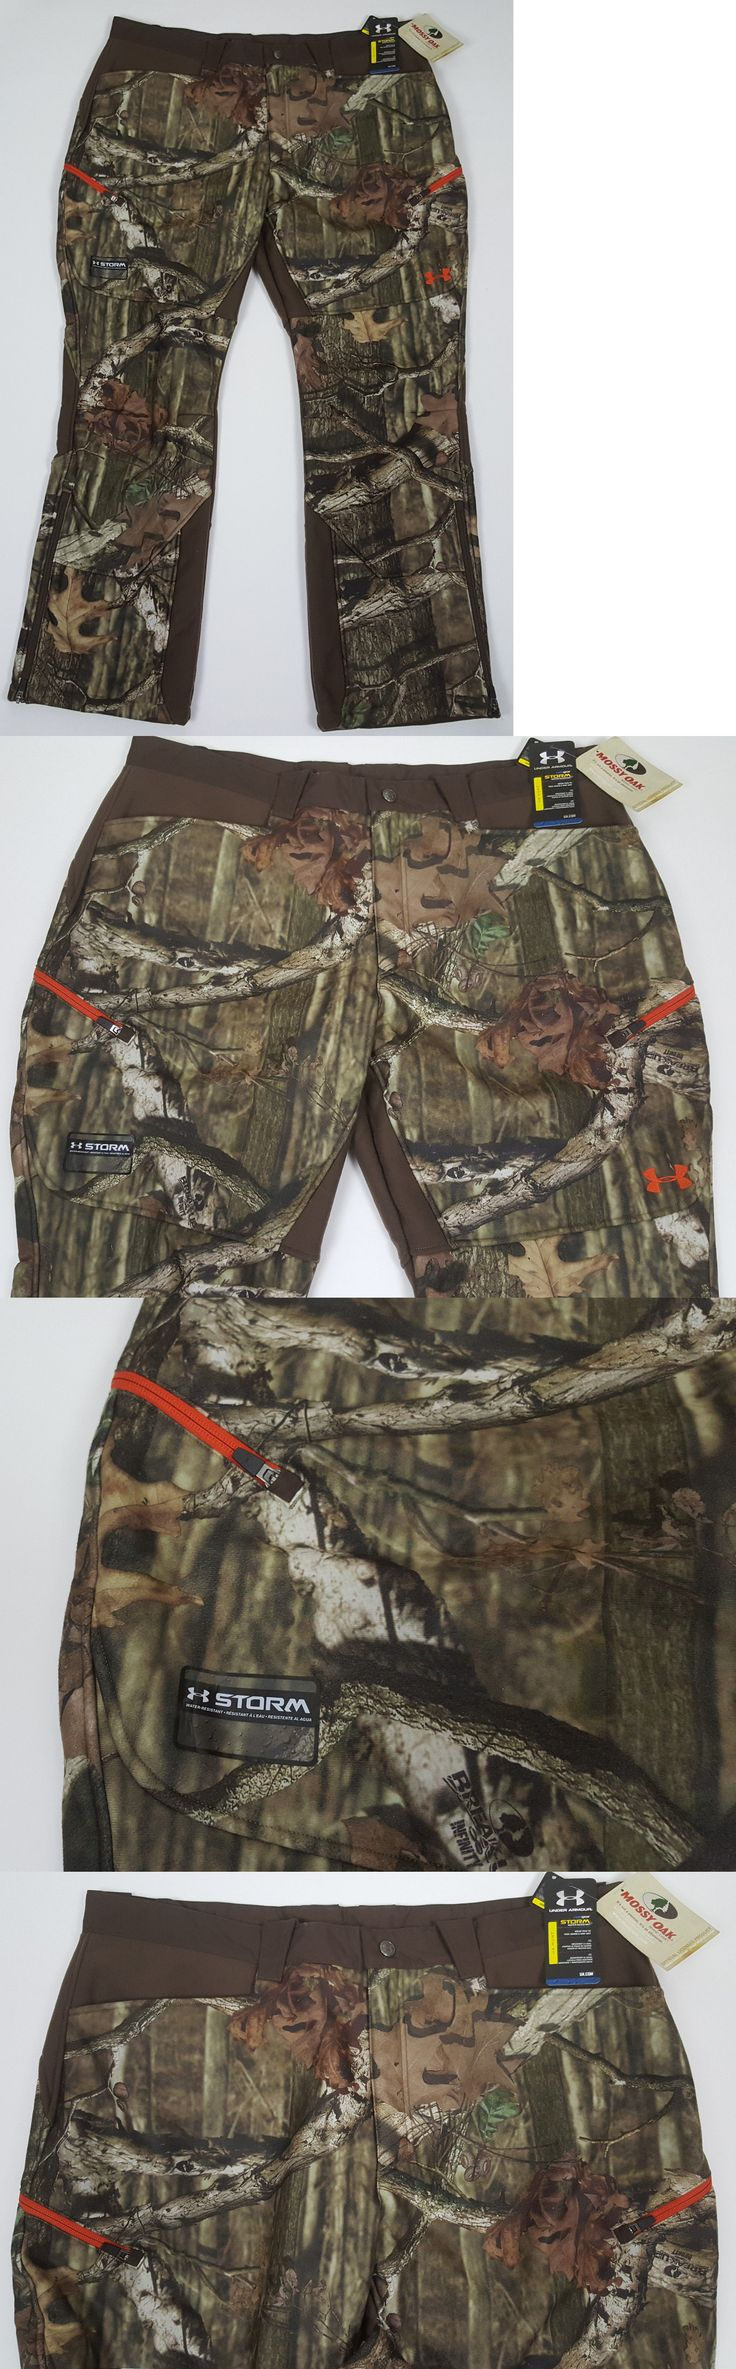 Pants and Bibs 177873: Under Armour Storm Ayton Mossy Oak Camo Hunting Pants $100 1238326-920 (Size 42) -> BUY IT NOW ONLY: $69.99 on eBay!